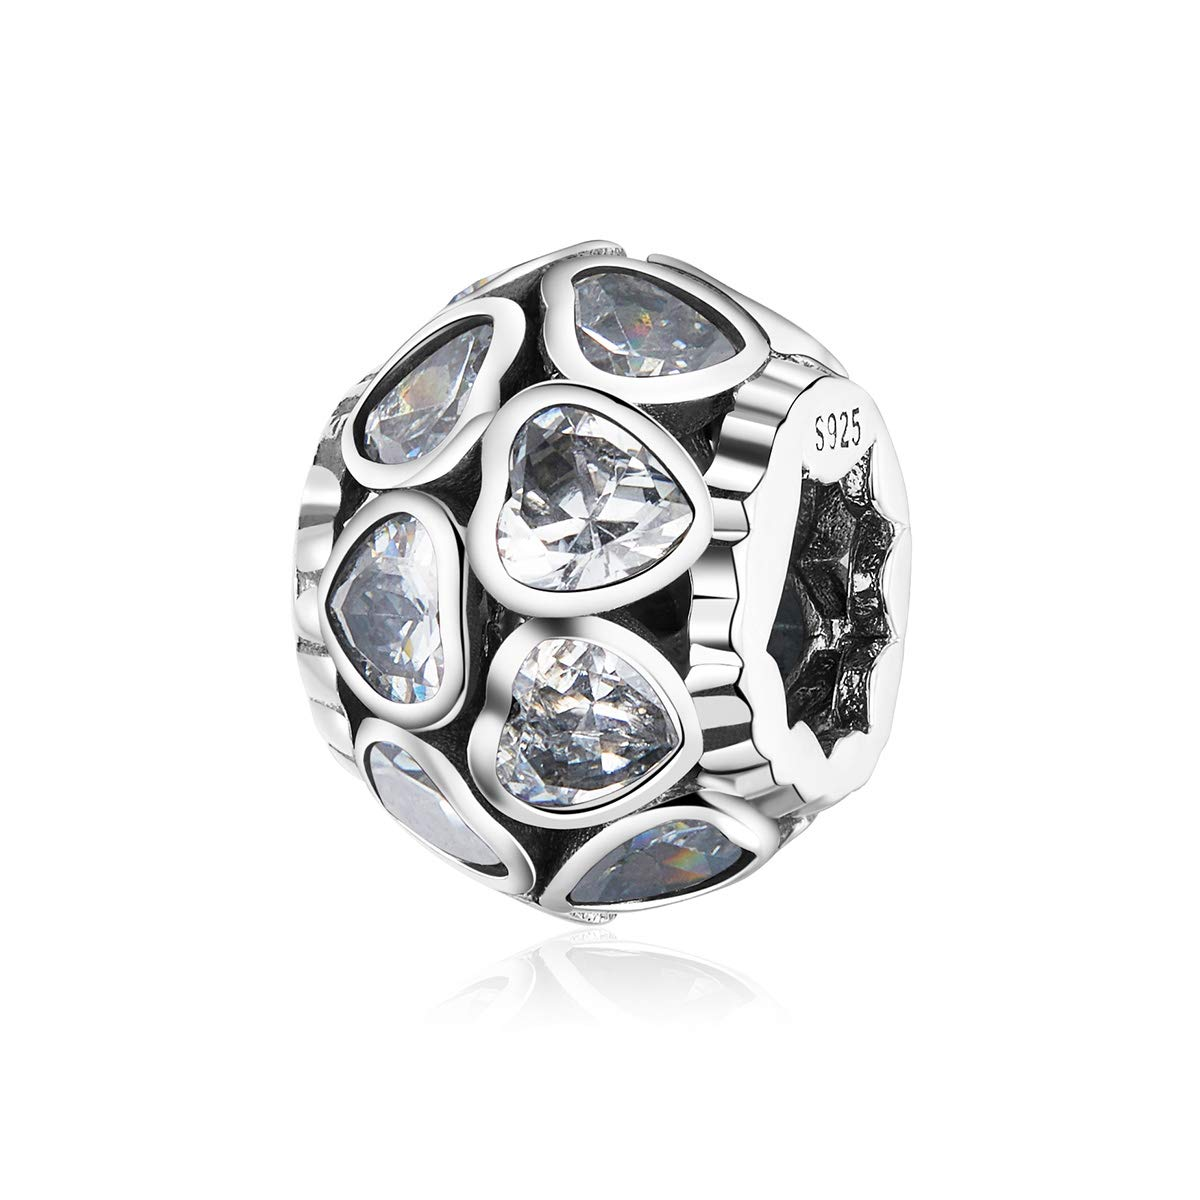 NINGAN Birthstone Love All Around Heart Bead Charms 925 Sterling Silver Happy Birthday Charm Gifts Fits Pandora & European Bracelets & Necklaces